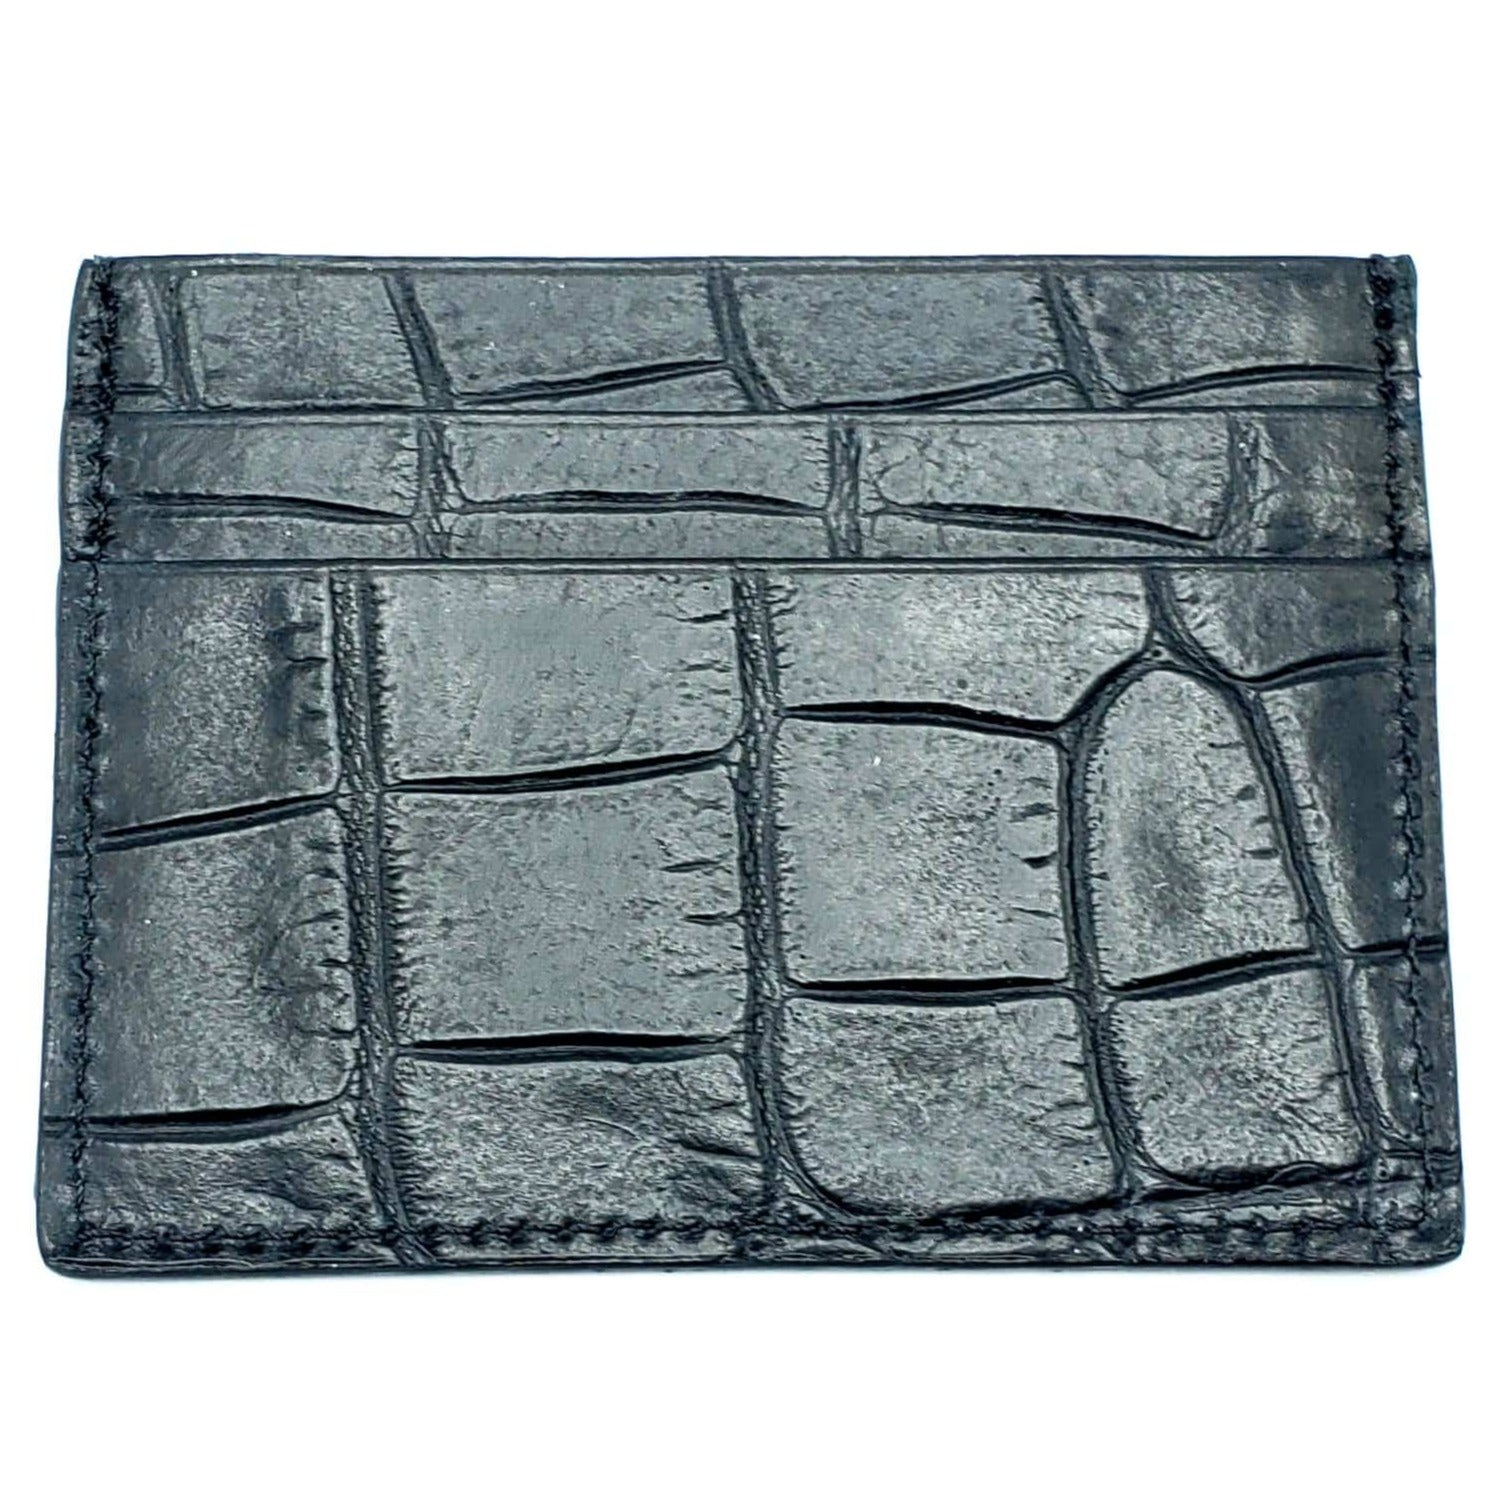 SVB436 Signature Collection - Crocco Card Holder 4CC - Selleria Veneta